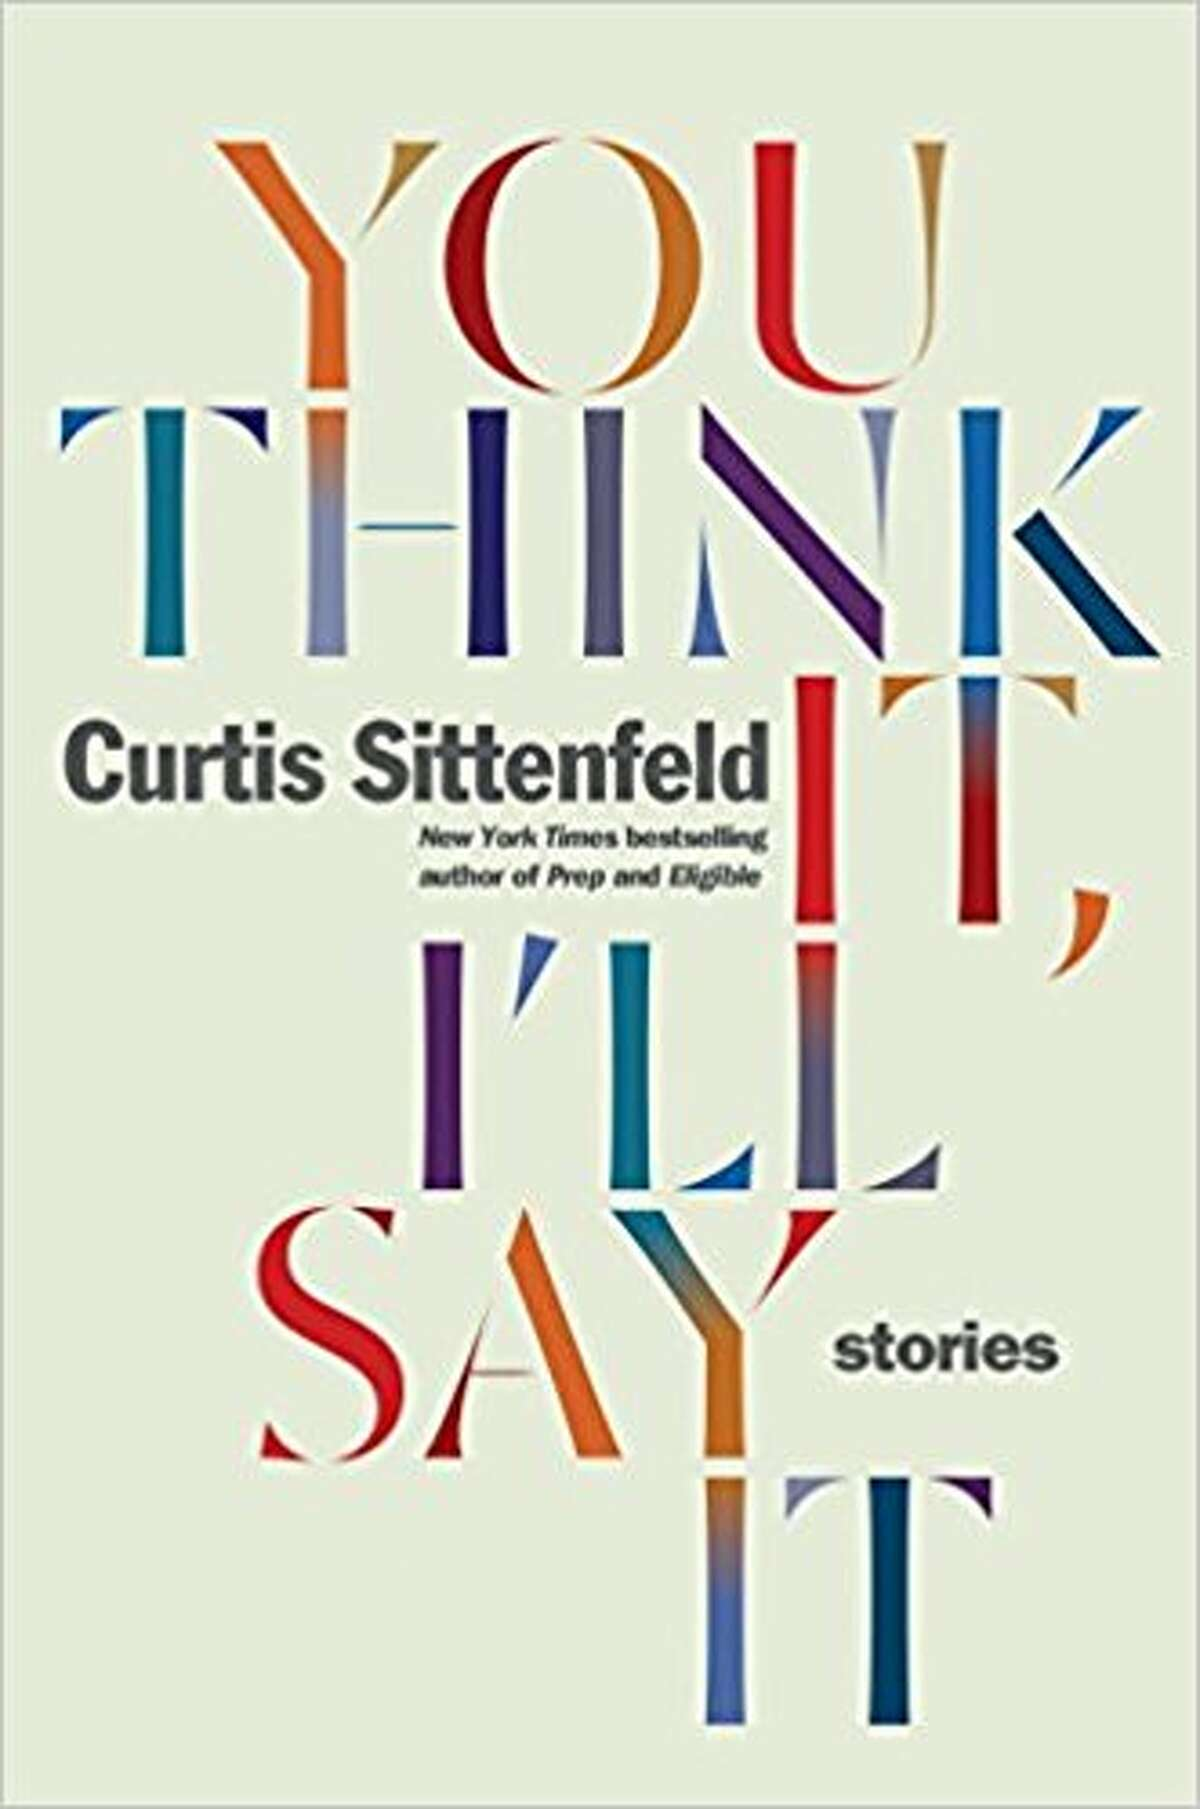 The new collection showcases Sittenfeld's gifts for scrutinizing the psyches of the privileged.